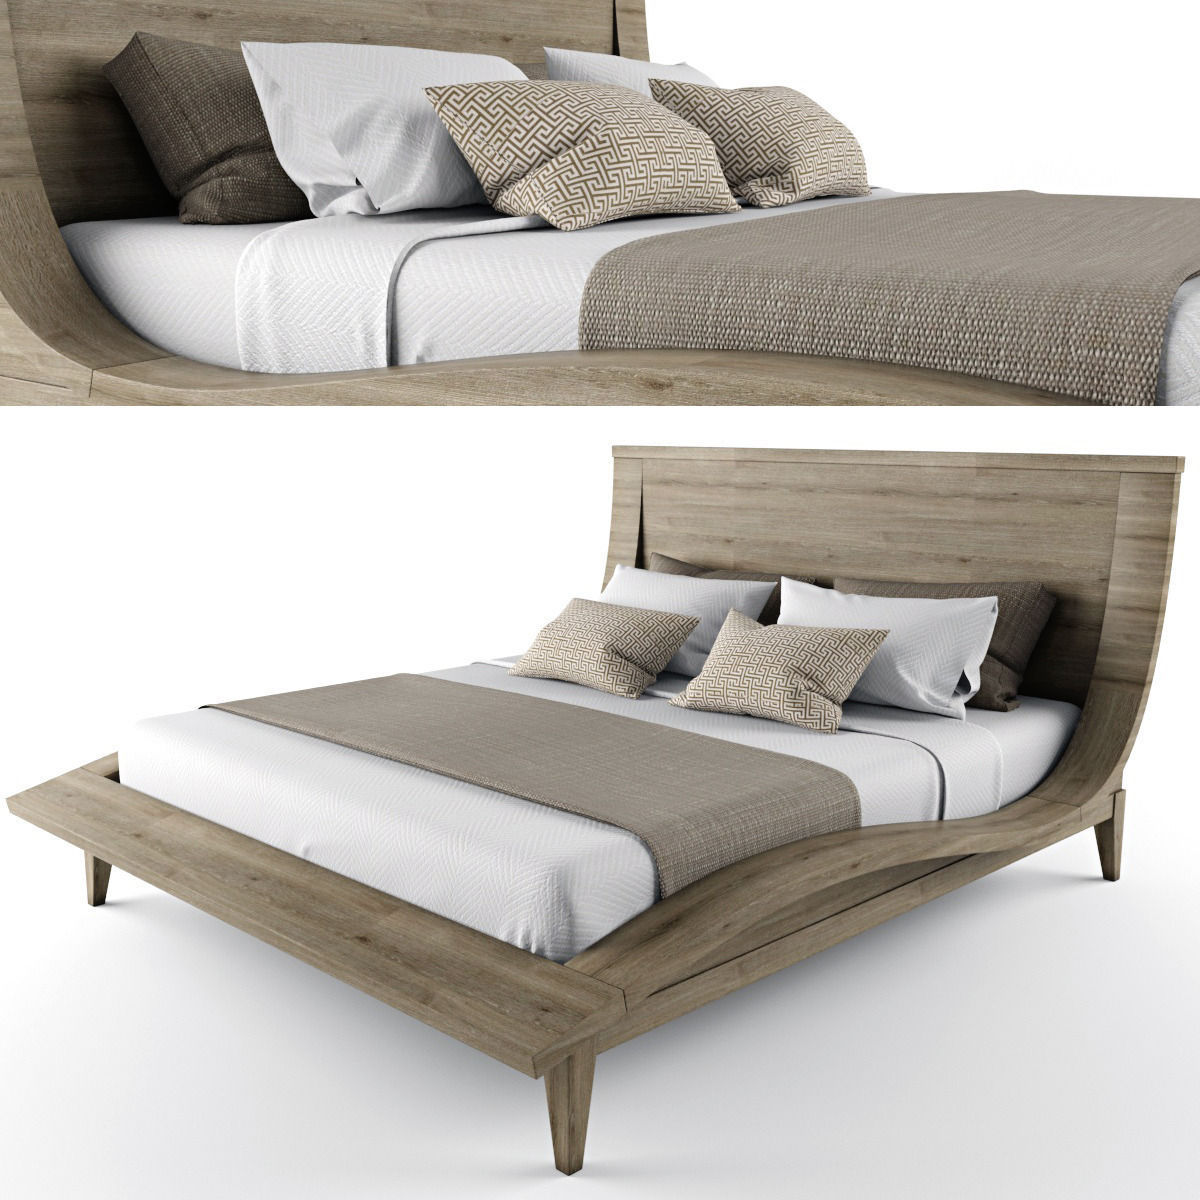 wooden bed brown d model  cgtrader - wooden bed d model max obj fbx